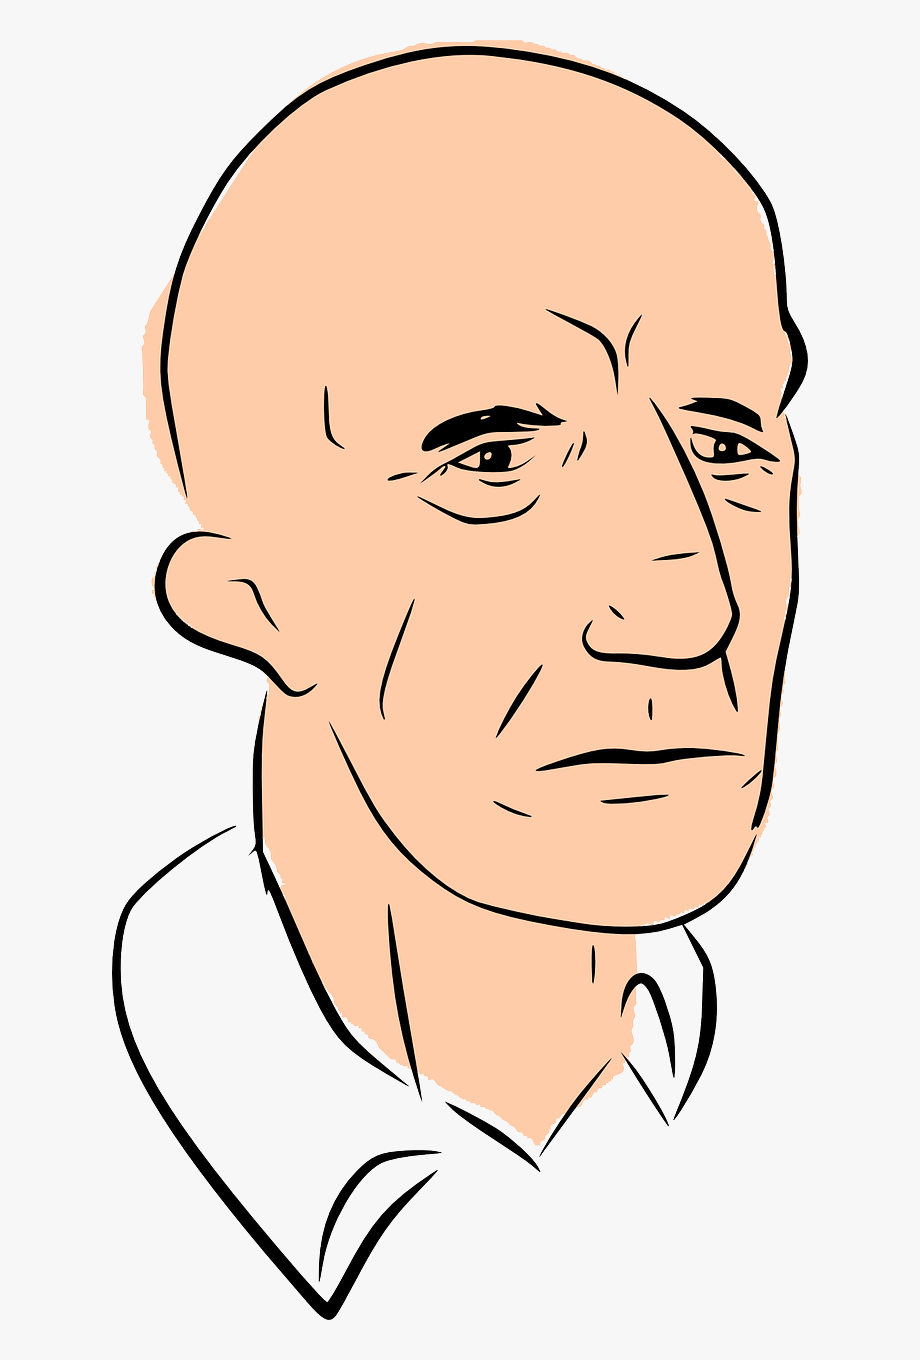 Bald Head Man Clipart, Cliparts & Cartoons.